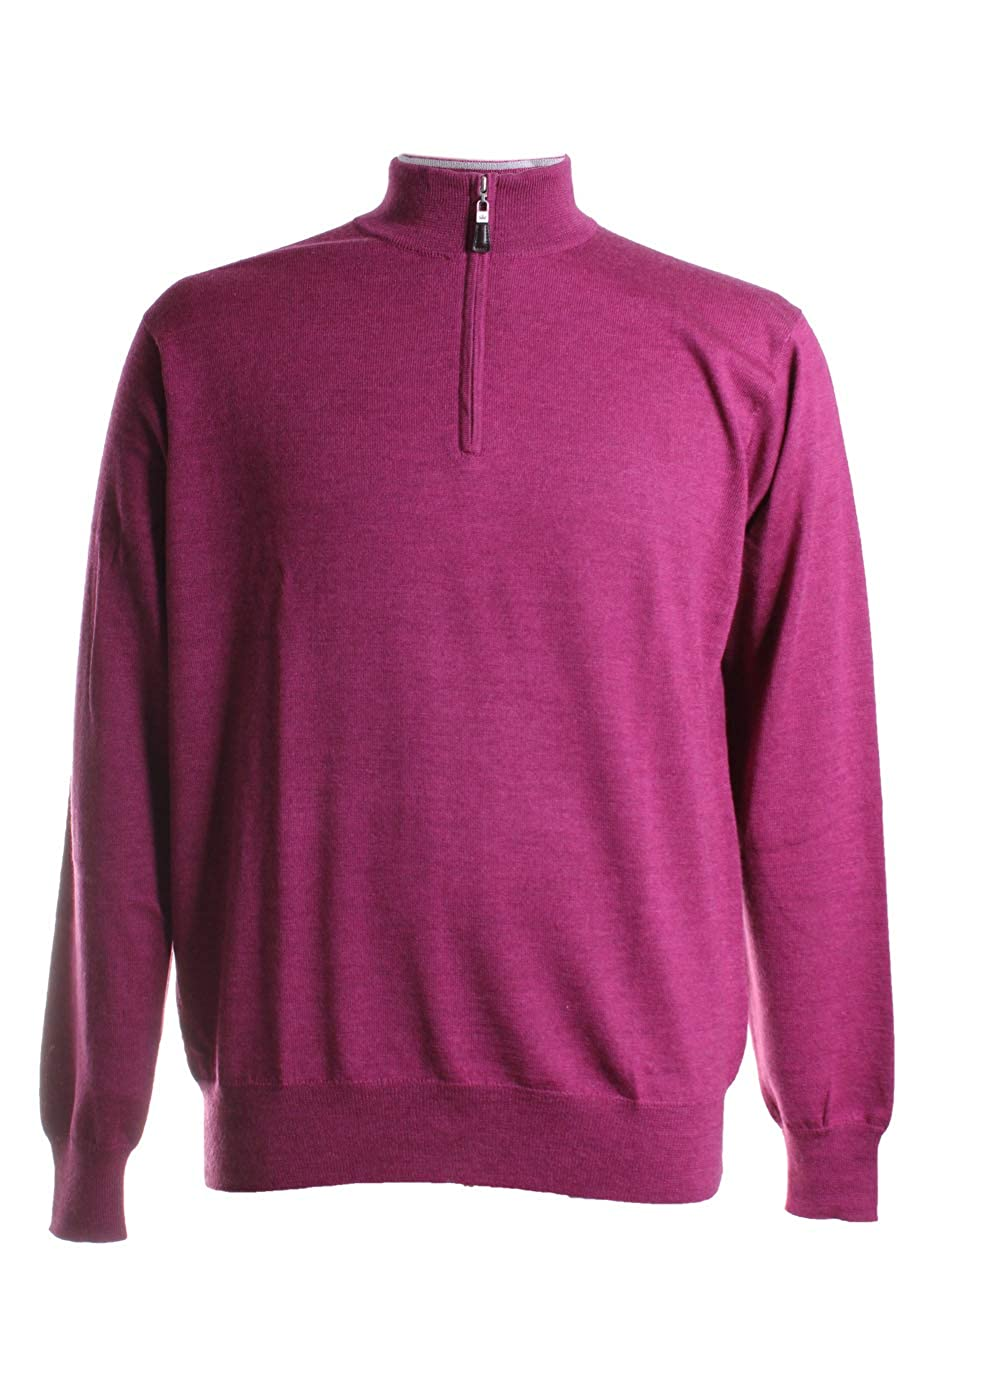 34a363b4c Amazon.com  PETER MILLAR Crown Soft 1 4 Zip (M) Winterberry  Clothing